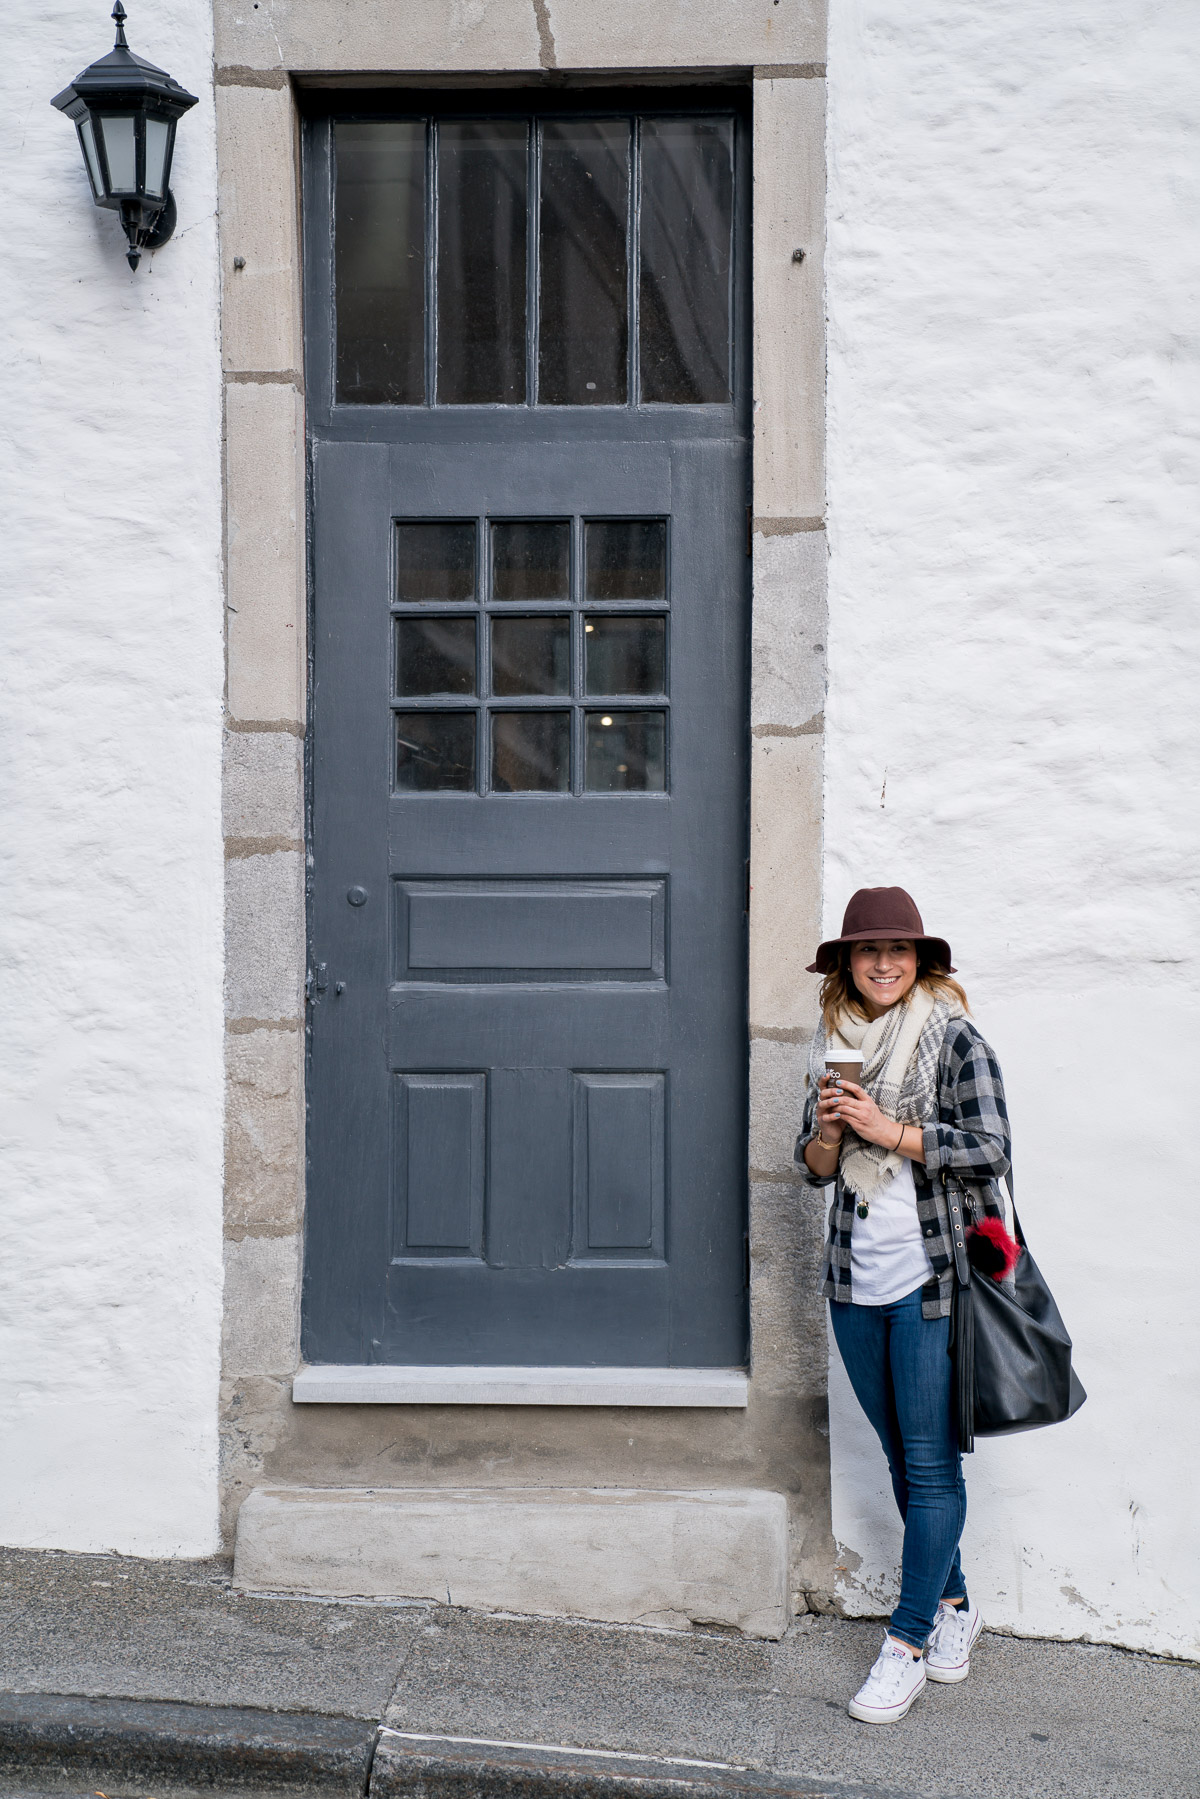 Exploring Old Montreal and finding white walls and colourful doorways